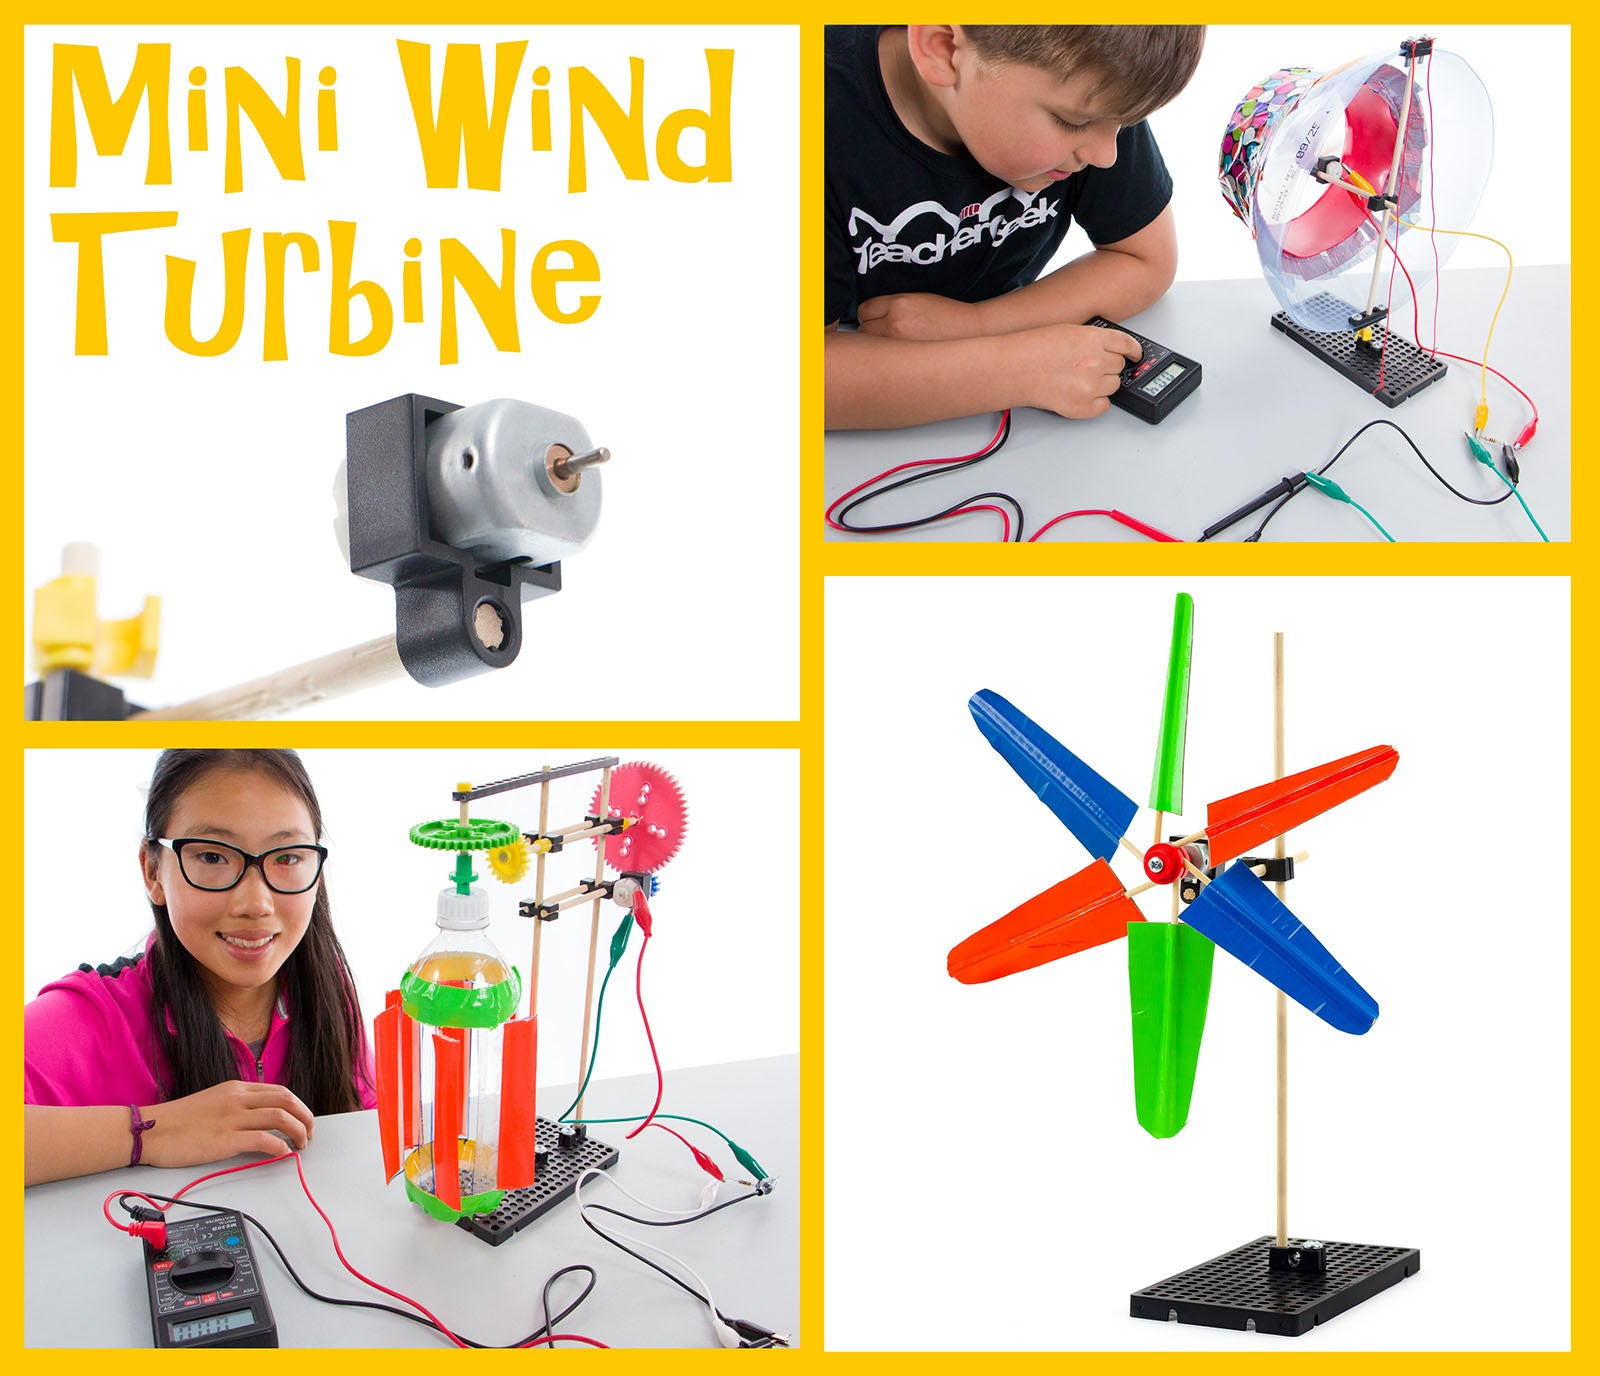 Mini Wind Turbine Activity Documents